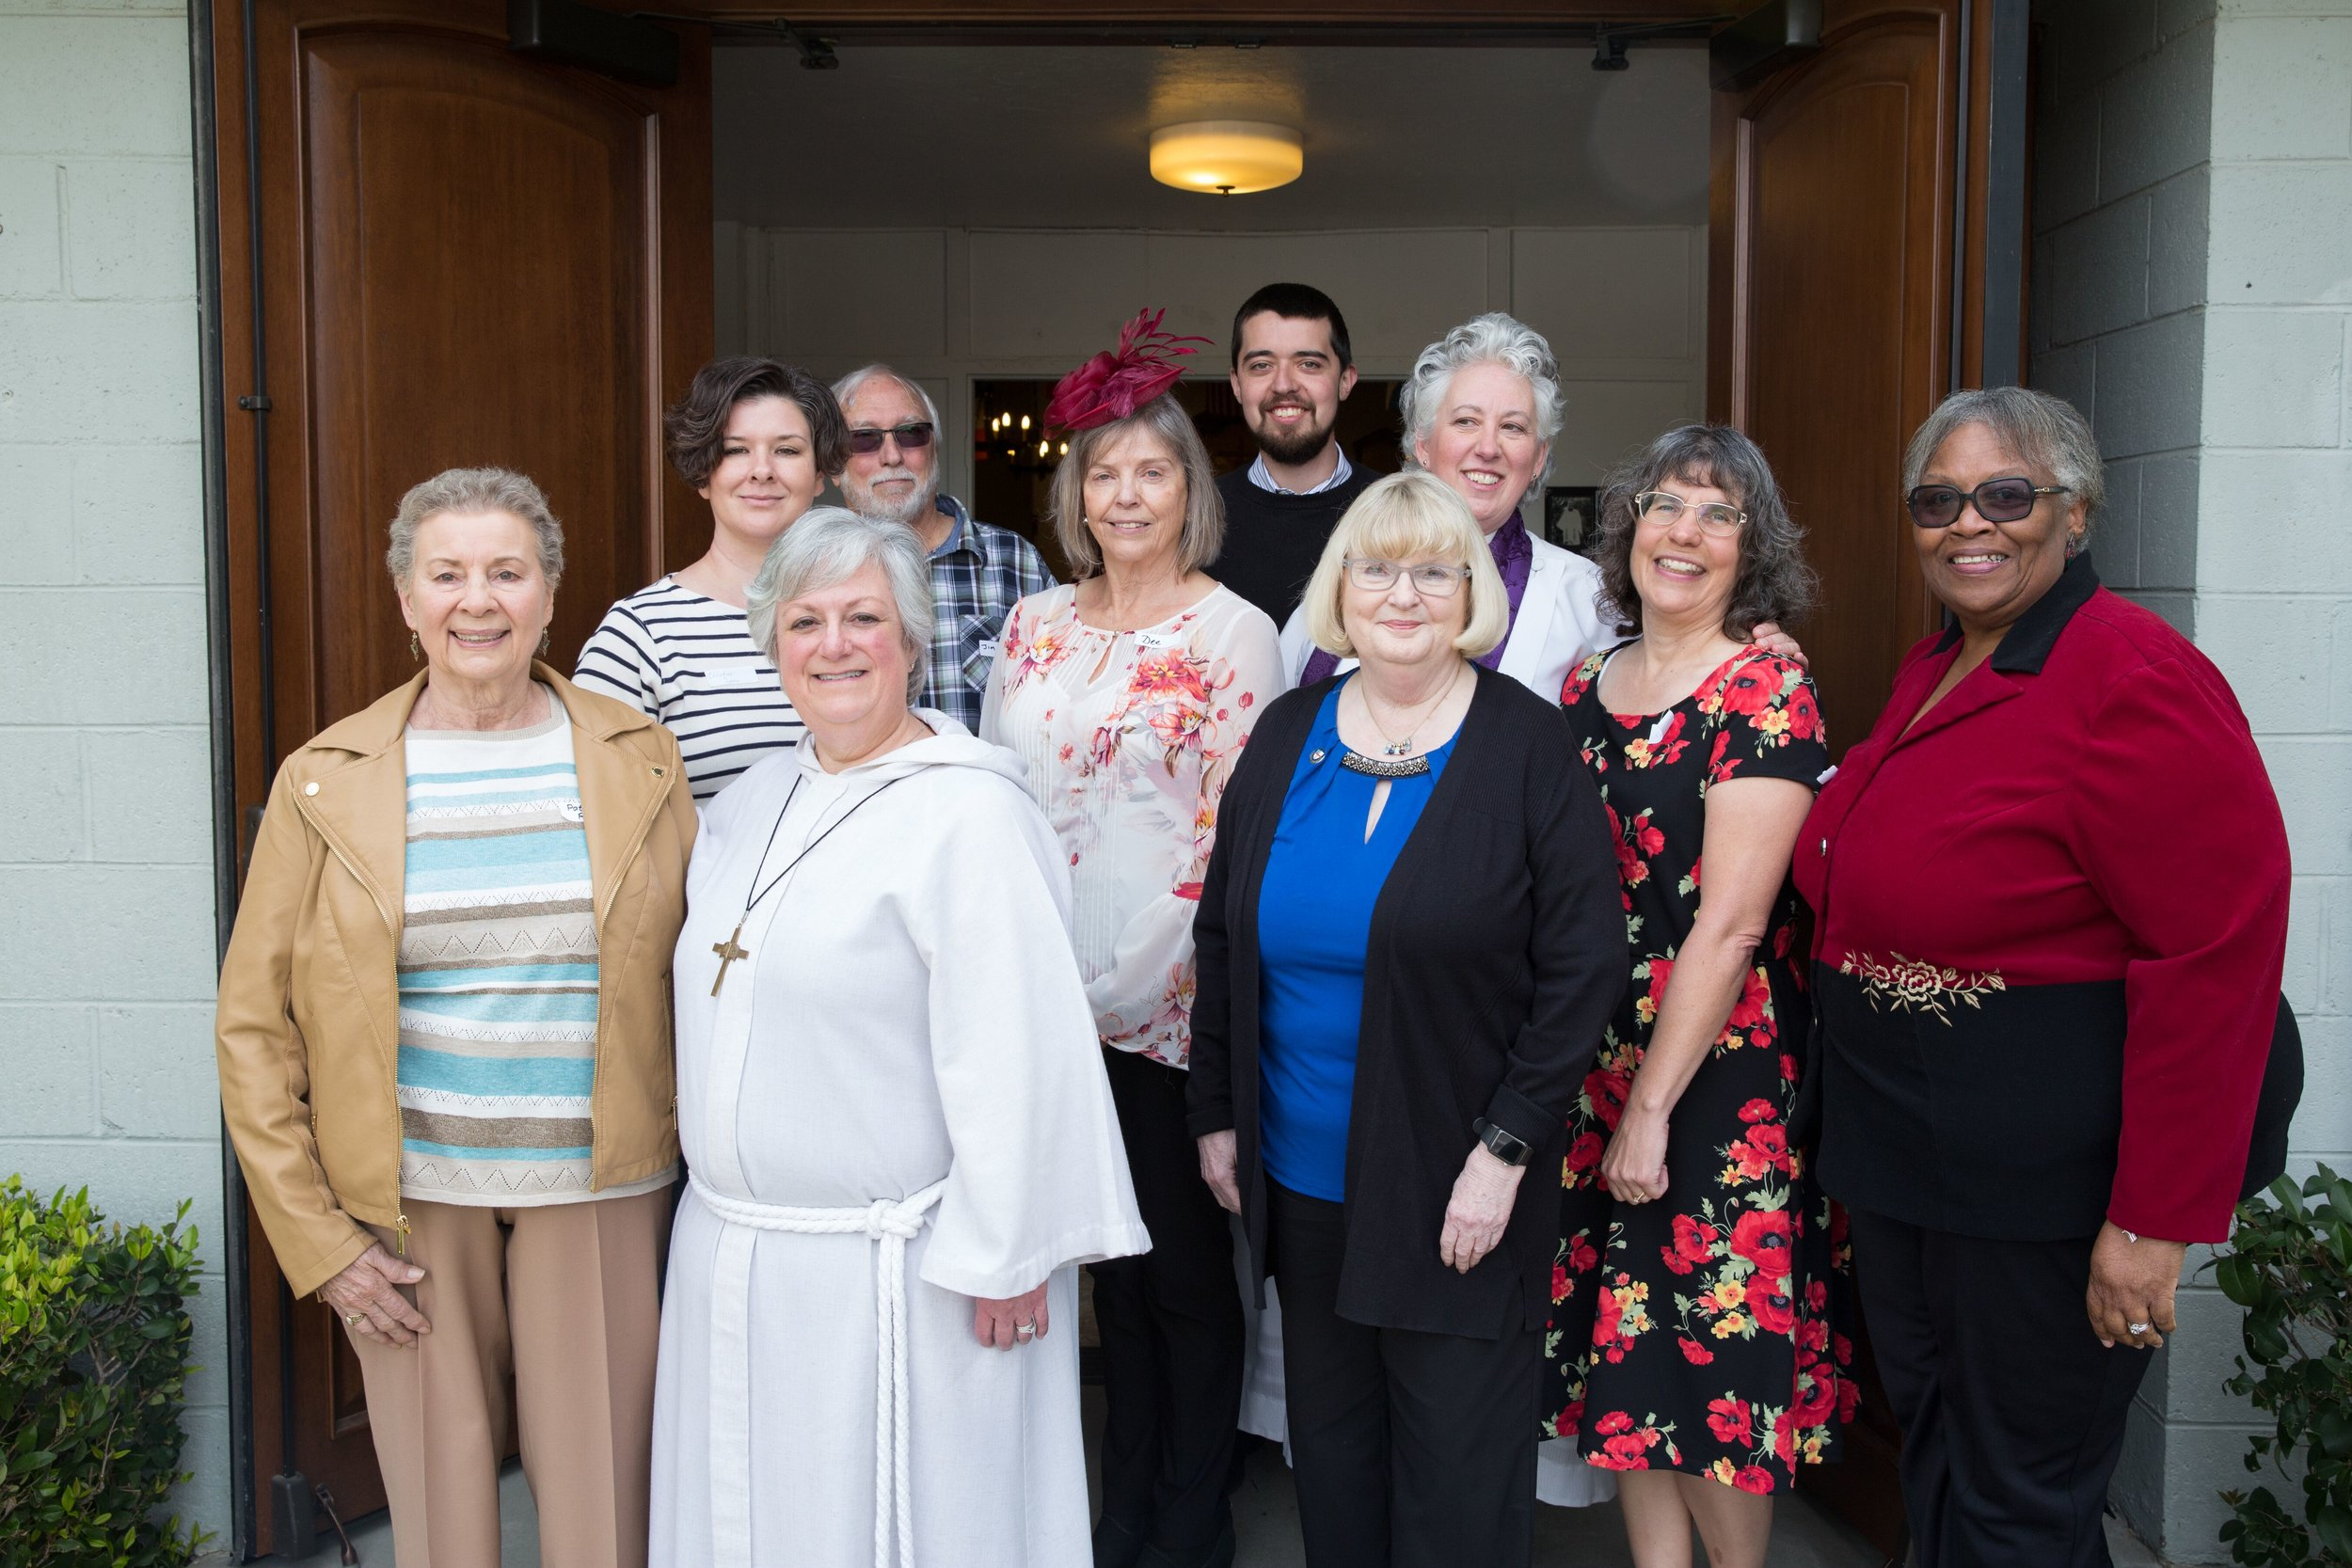 The Rev. Jill Honodel  -   President,  Michelle Price  - Sr. Warden,  Dee Dwelley  -Jr. Warden,  Susan Black  -   Treasurer,  Christine Speer  - Secretary,  Mimi Costa-White, Pat Rimmer, Betty Smith, Jakeb Stanley, Jim Wiant